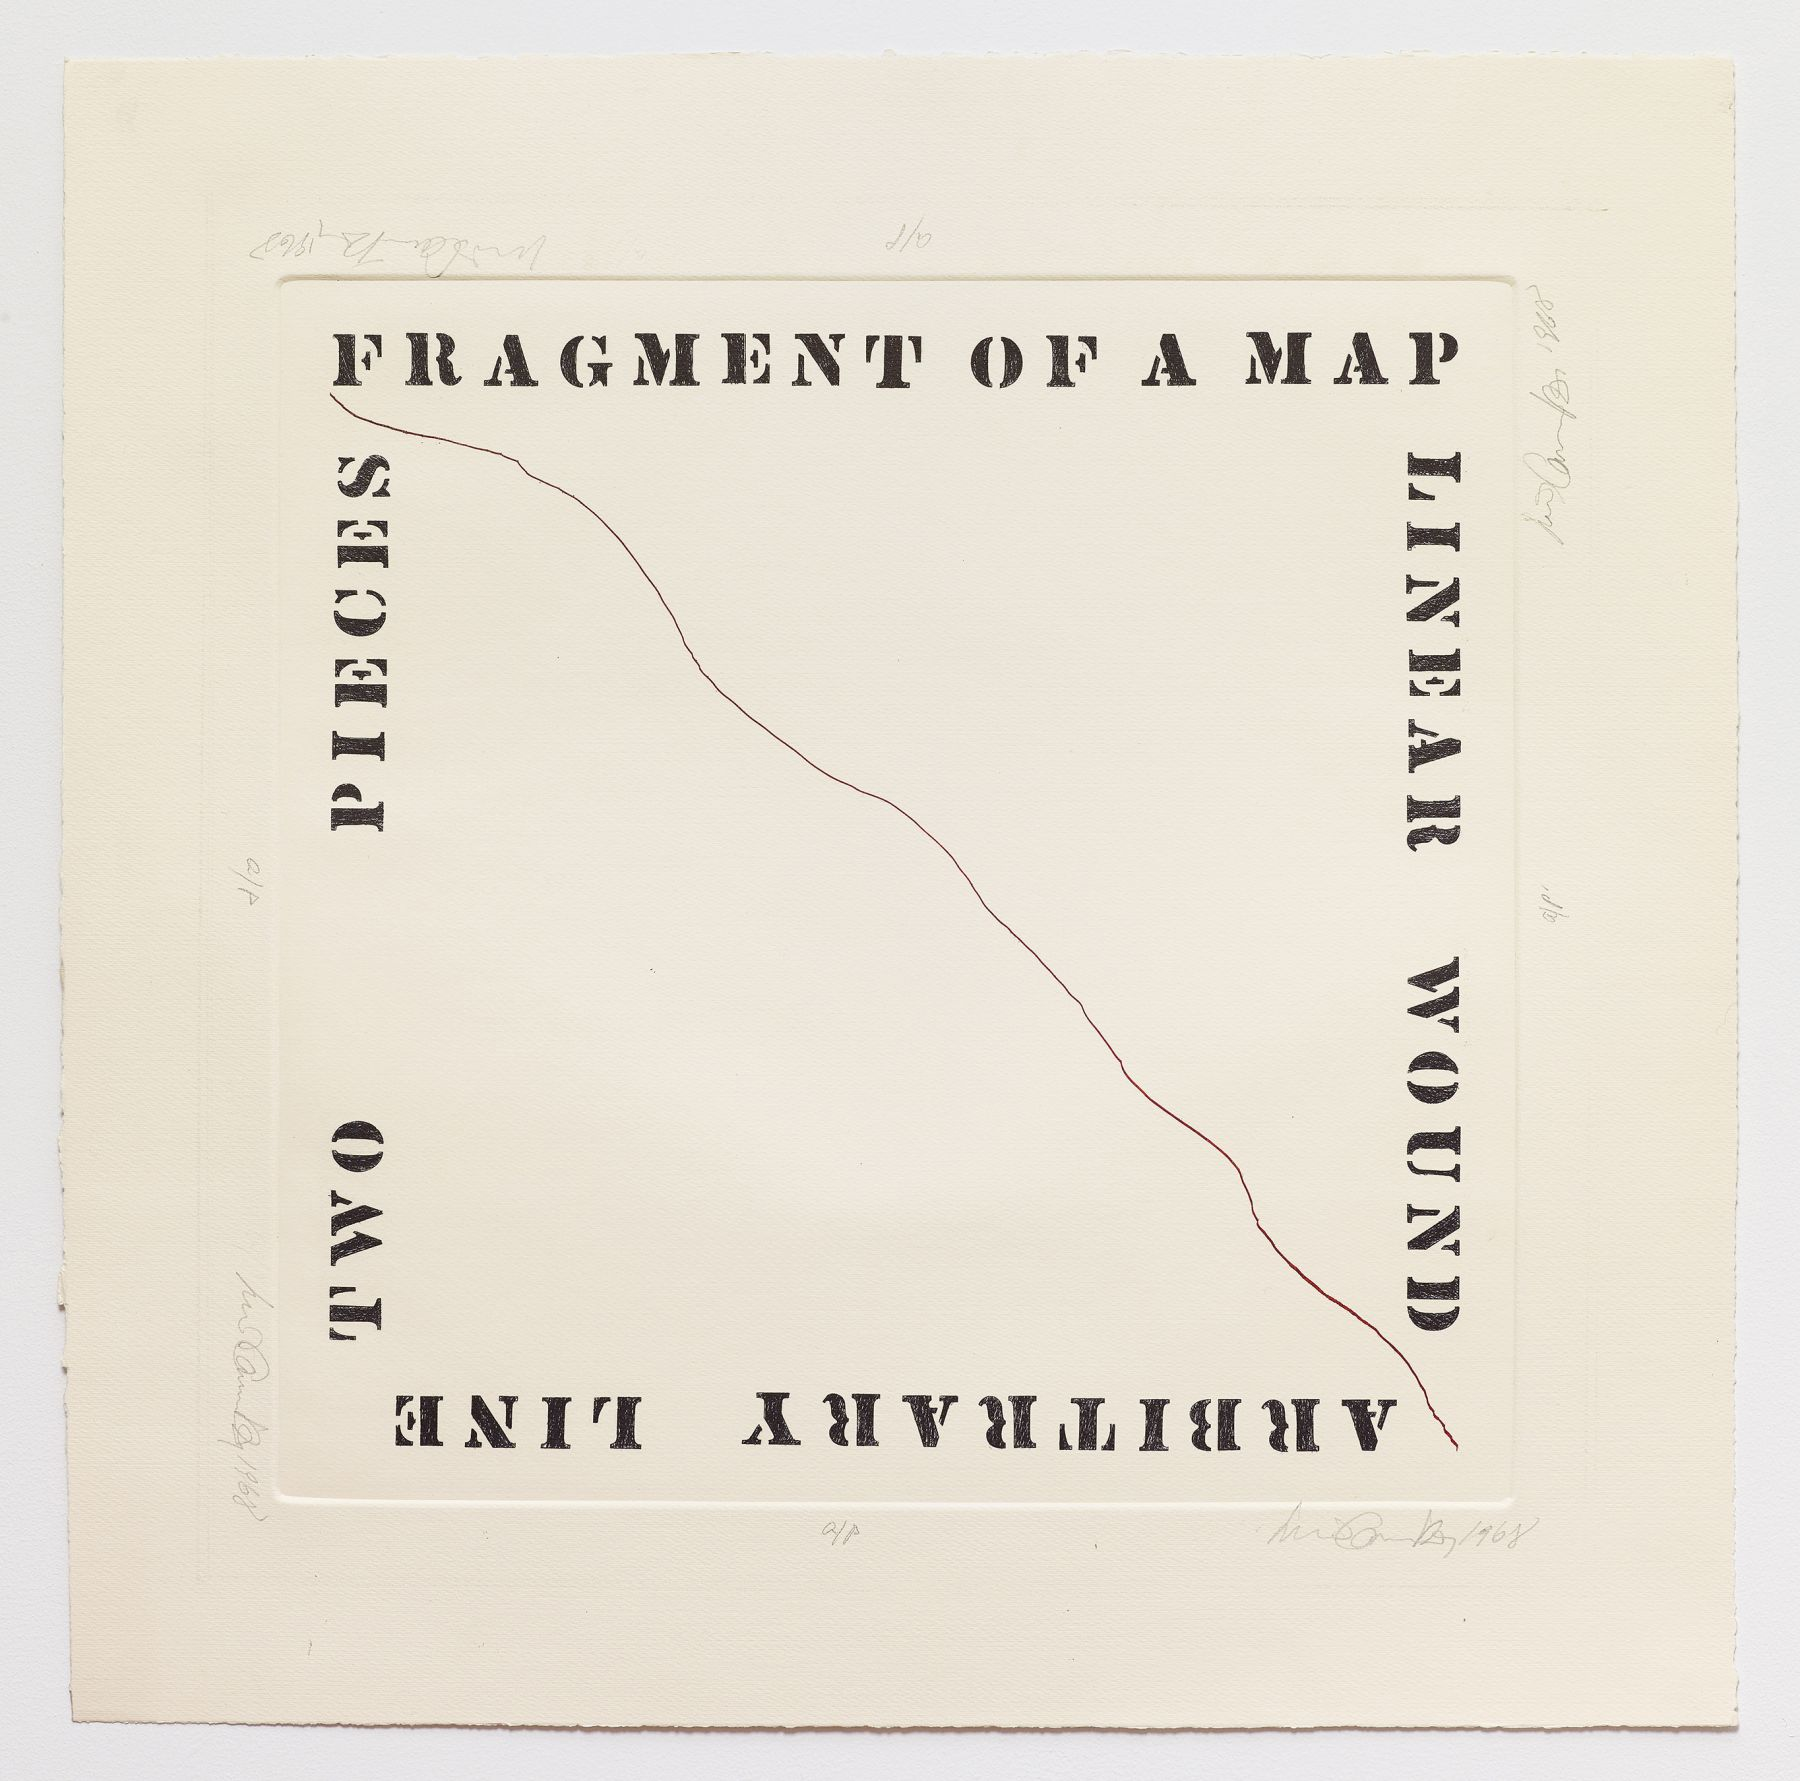 Luis Camnitzer, Fragment of a Map, 1968